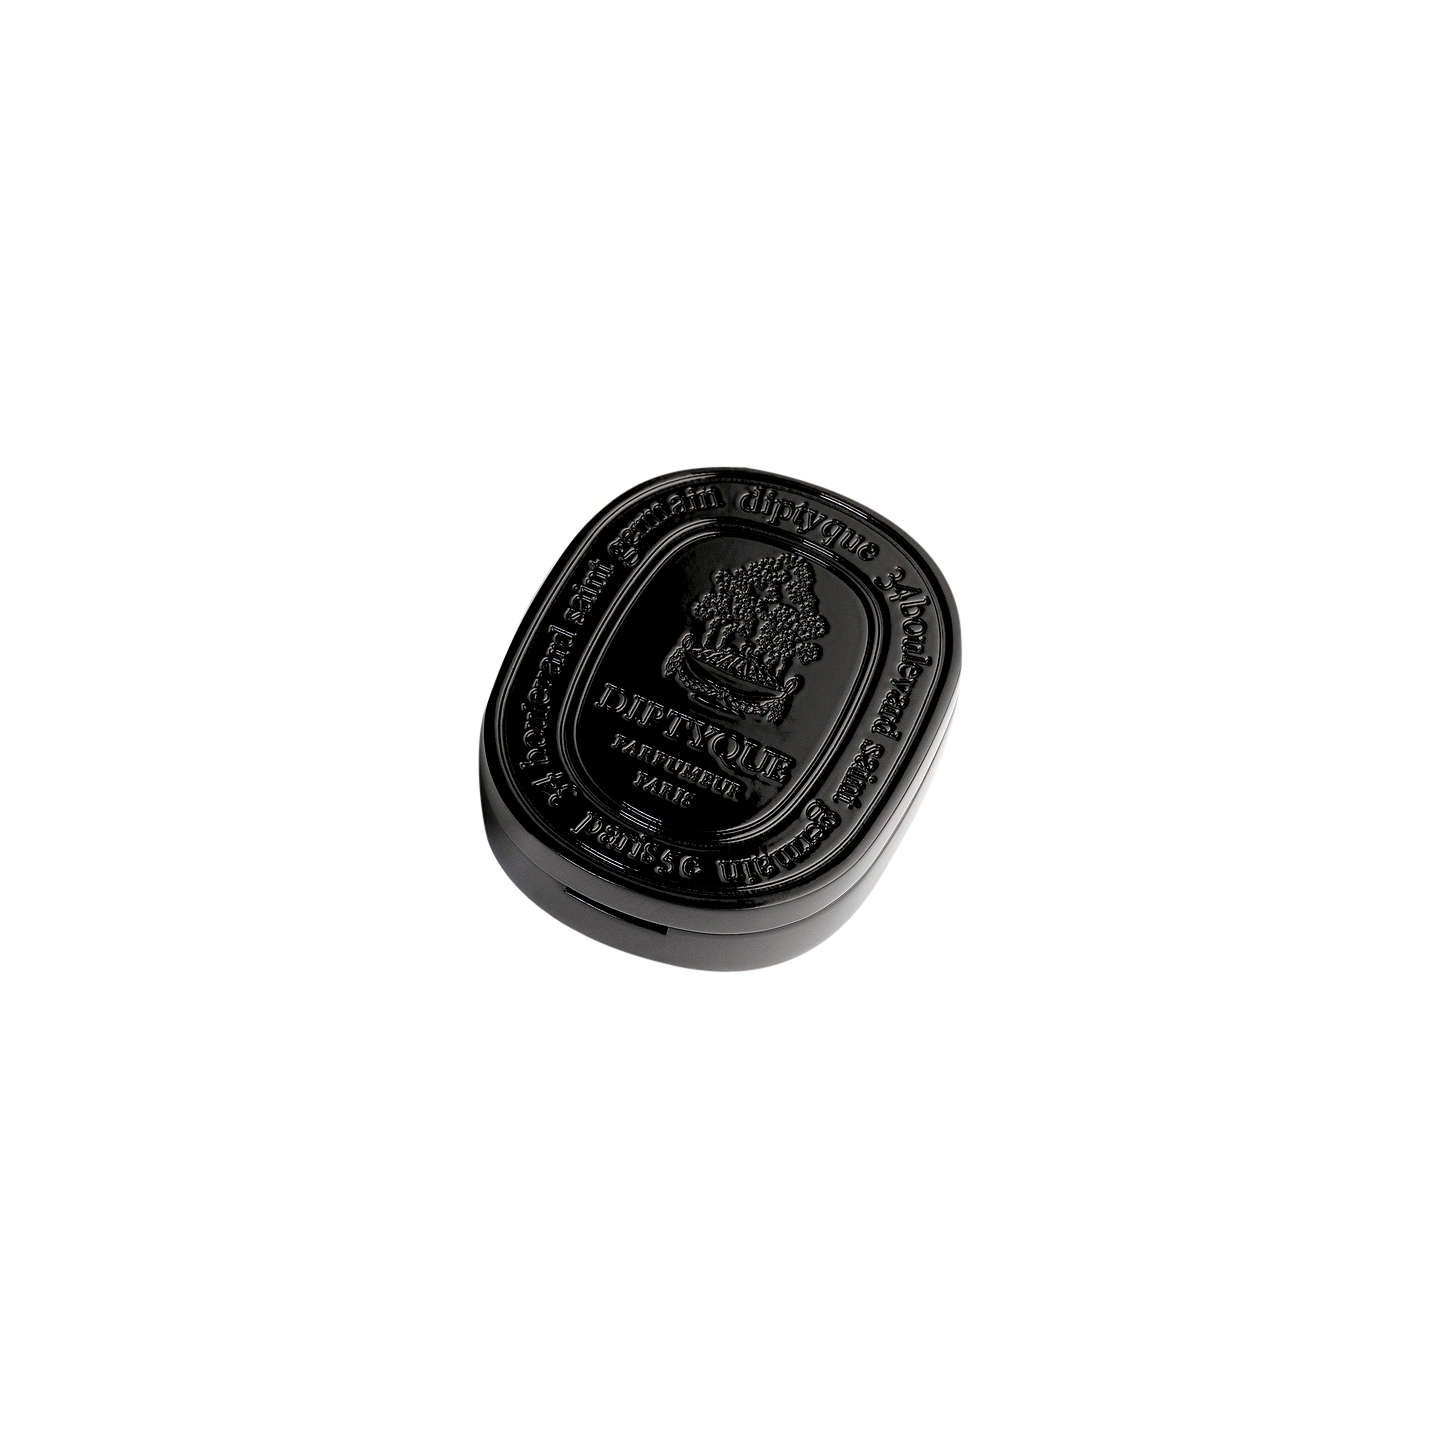 BuyDiptyque Do Son Solid Perfume Black, 4.5g Online at johnlewis.com